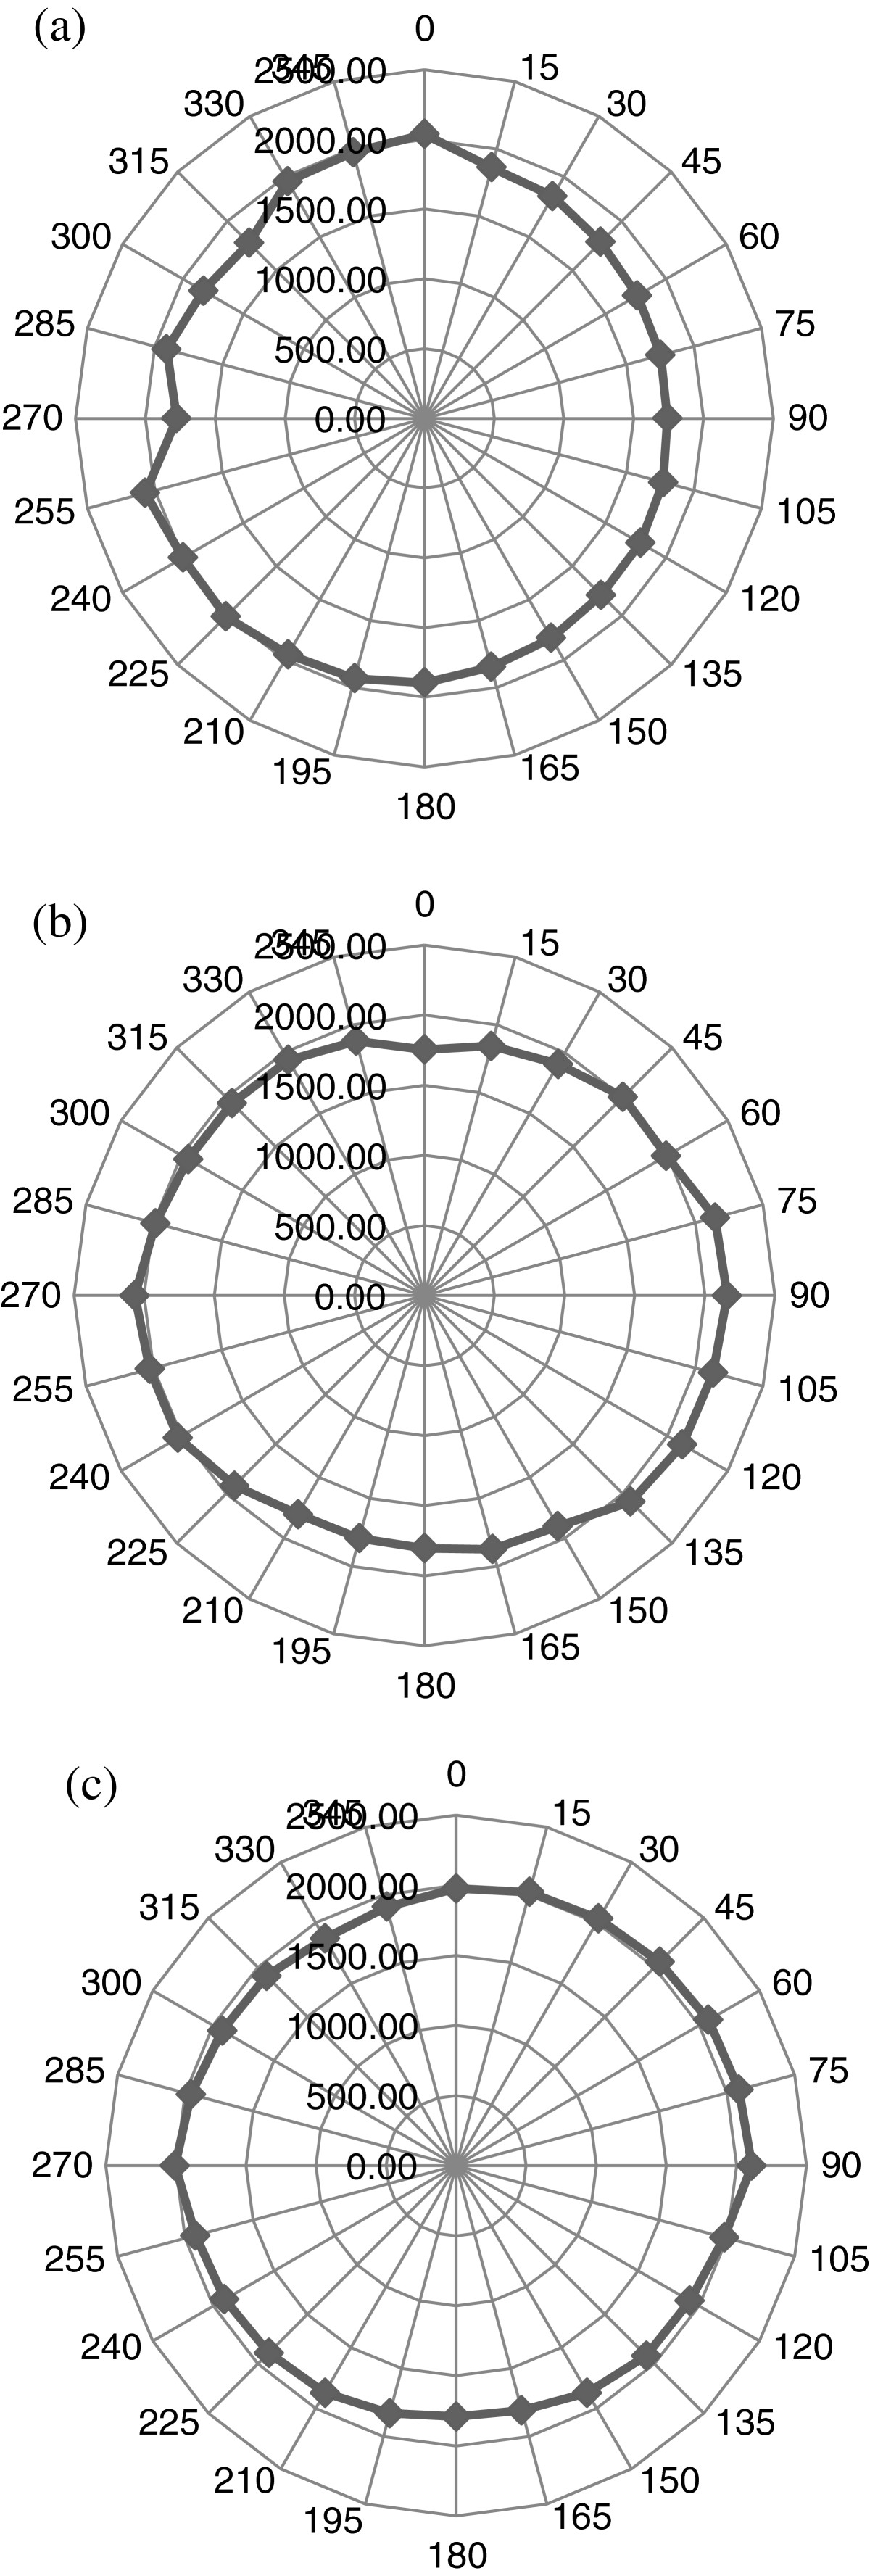 http://static-content.springer.com/image/art%3A10.1186%2F2050-5736-1-5/MediaObjects/40349_2012_Article_6_Fig7_HTML.jpg